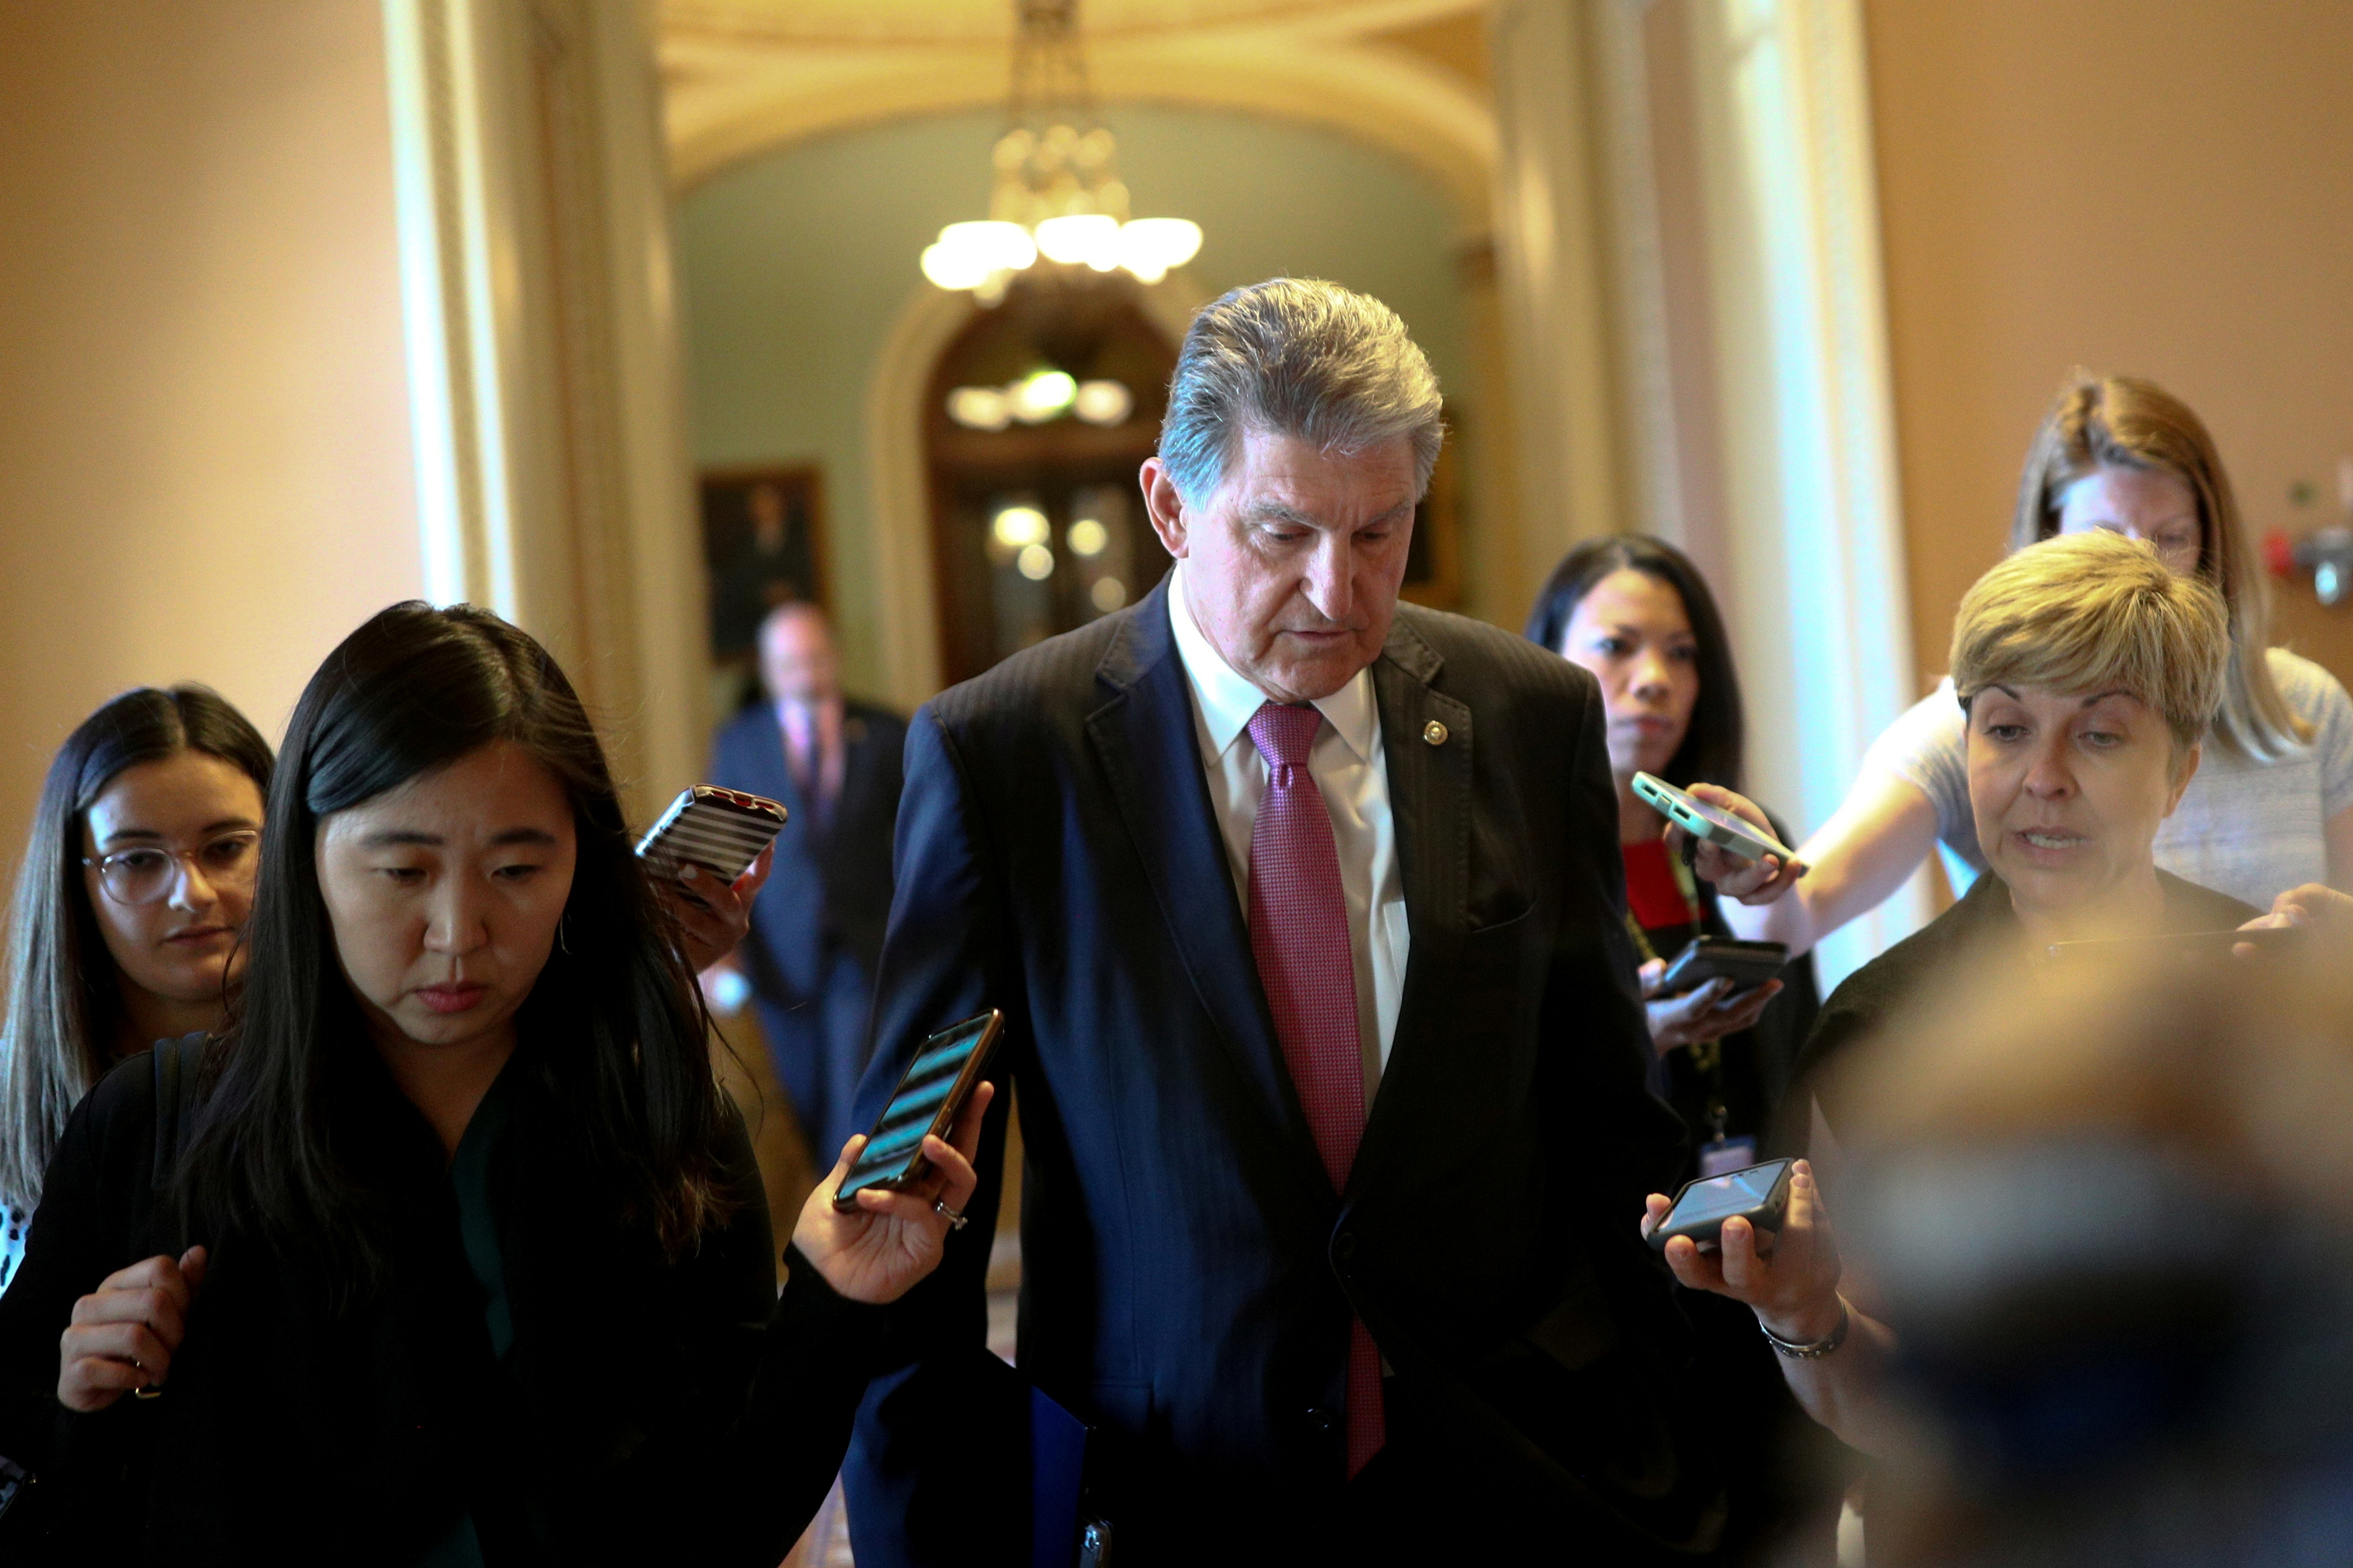 FILE PHOTO: Senator Joe Manchin (D-WV) speaks to news reporters before attending a meeting on infrastructure on Capitol Hill in Washington, U.S., June 23, 2021.  REUTERS/Tom Brenner/File Photo